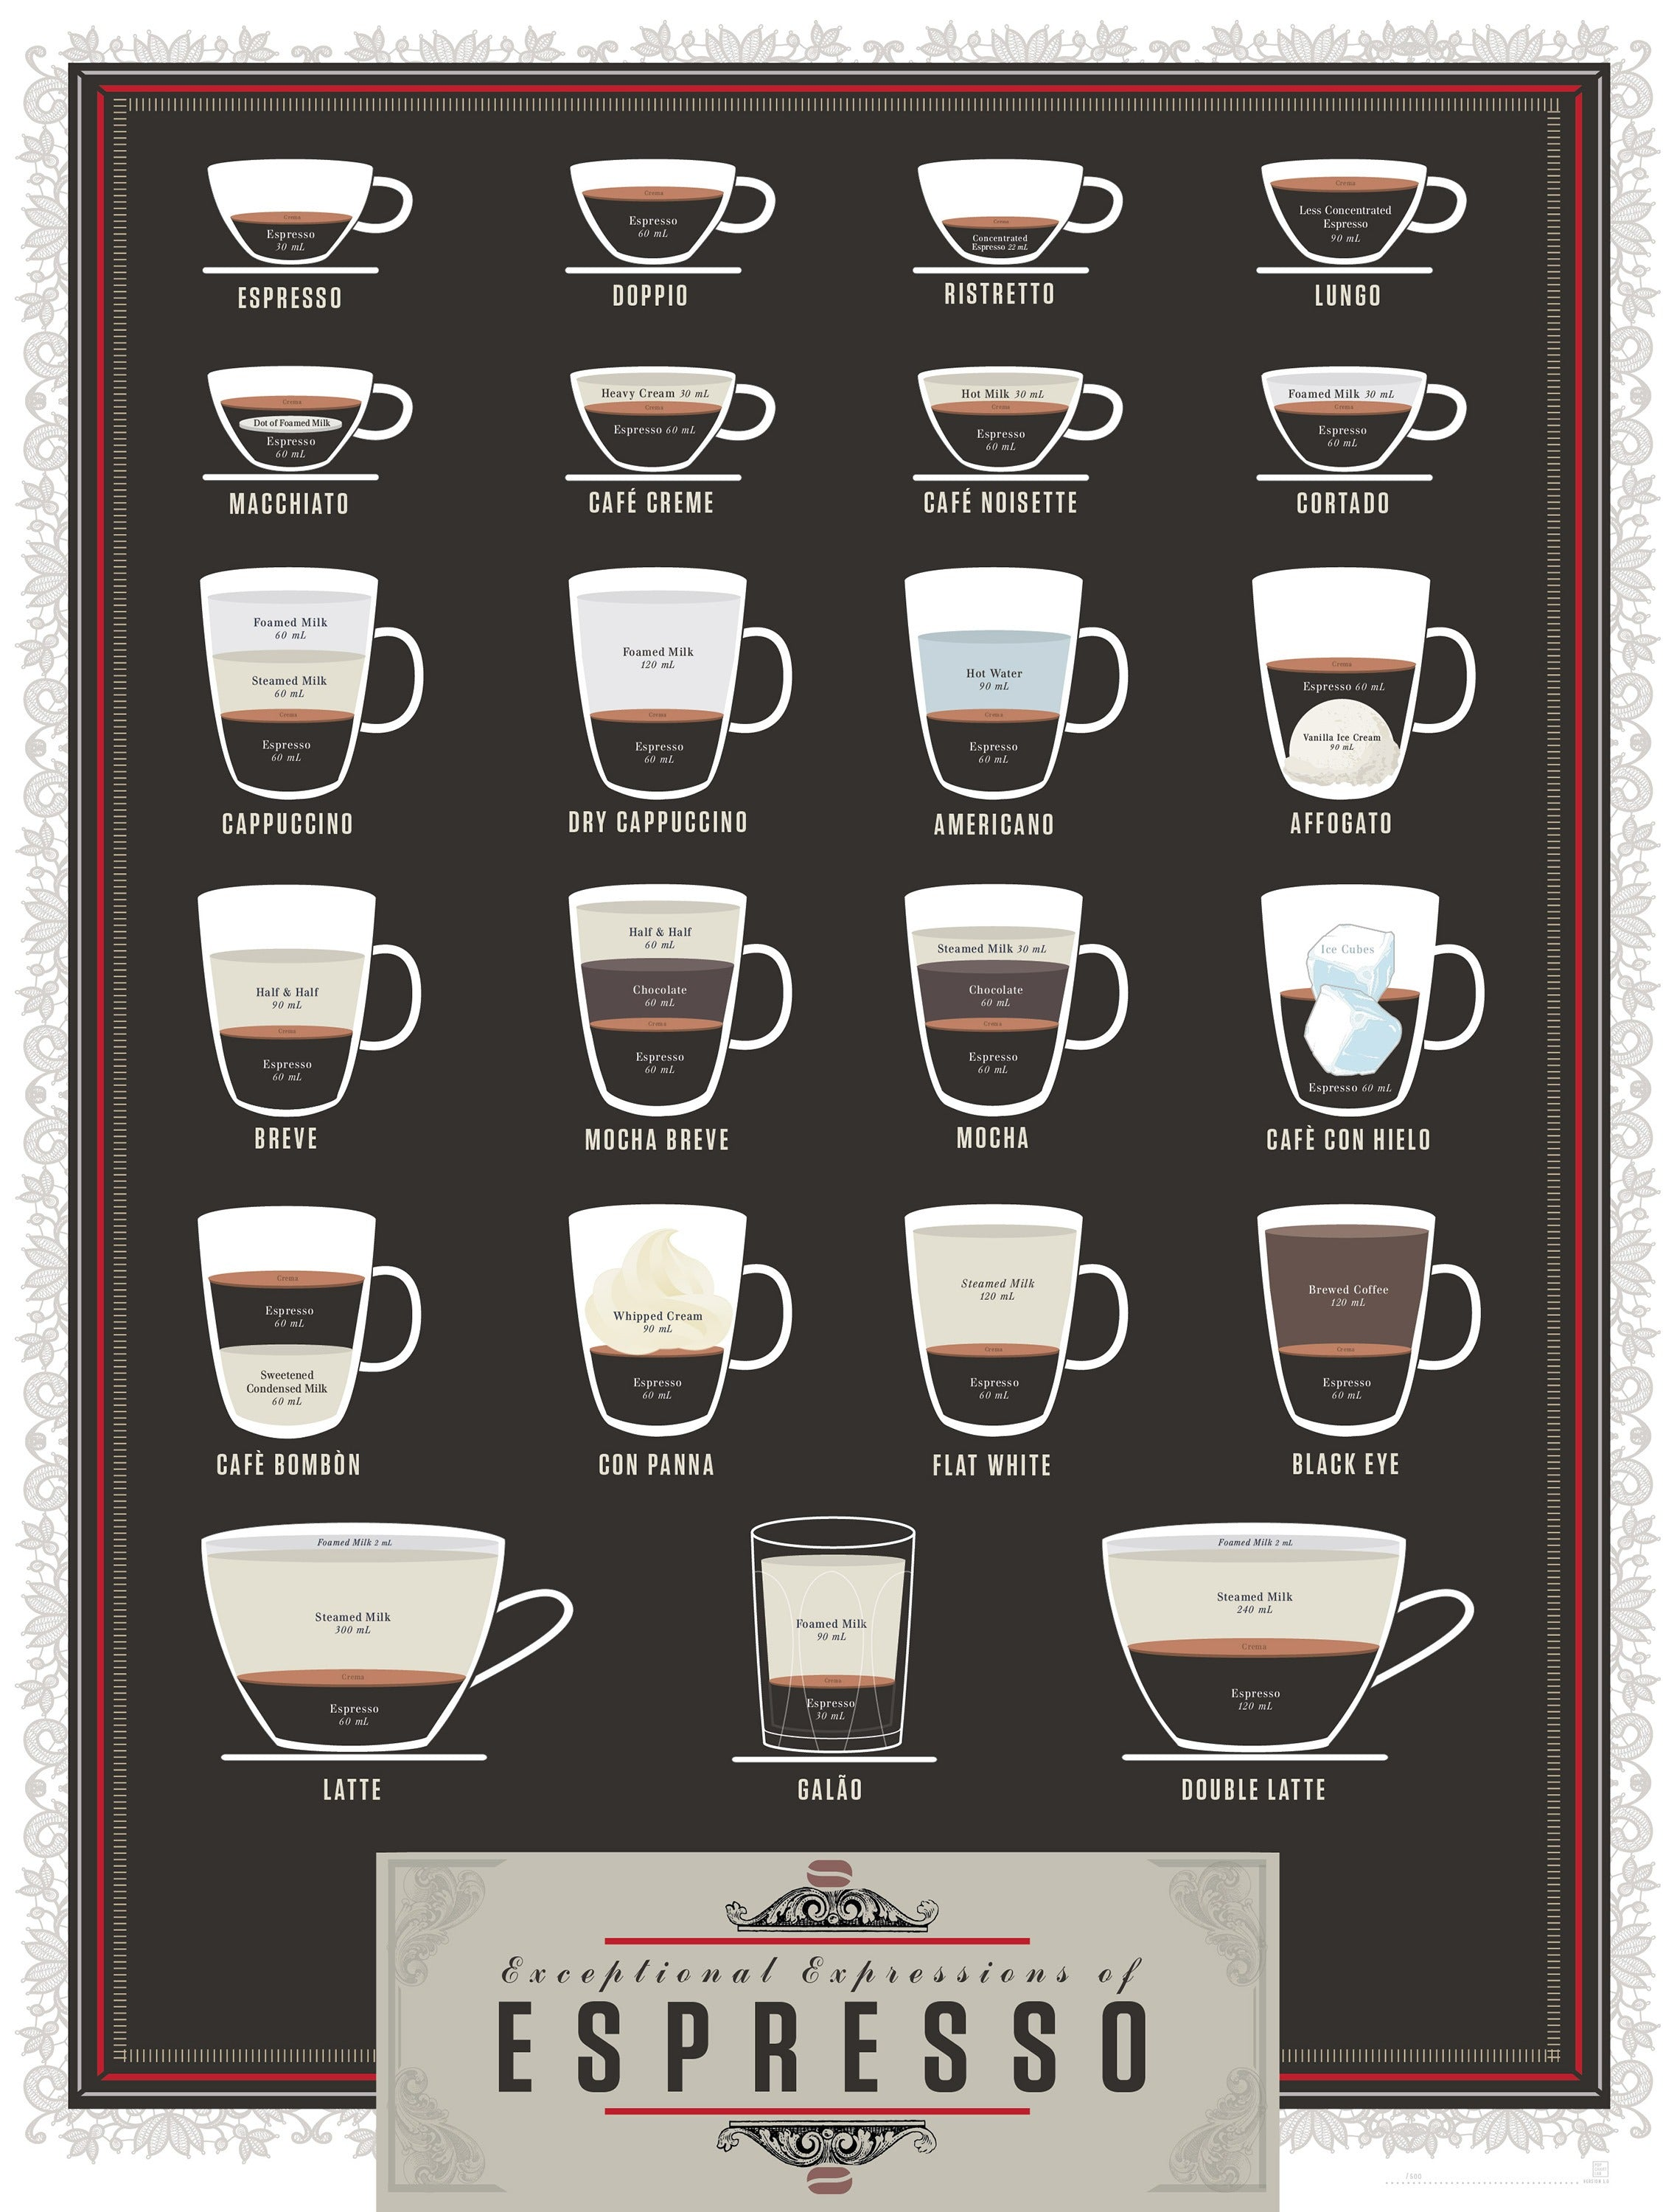 How do You Espresso your Javabomb?